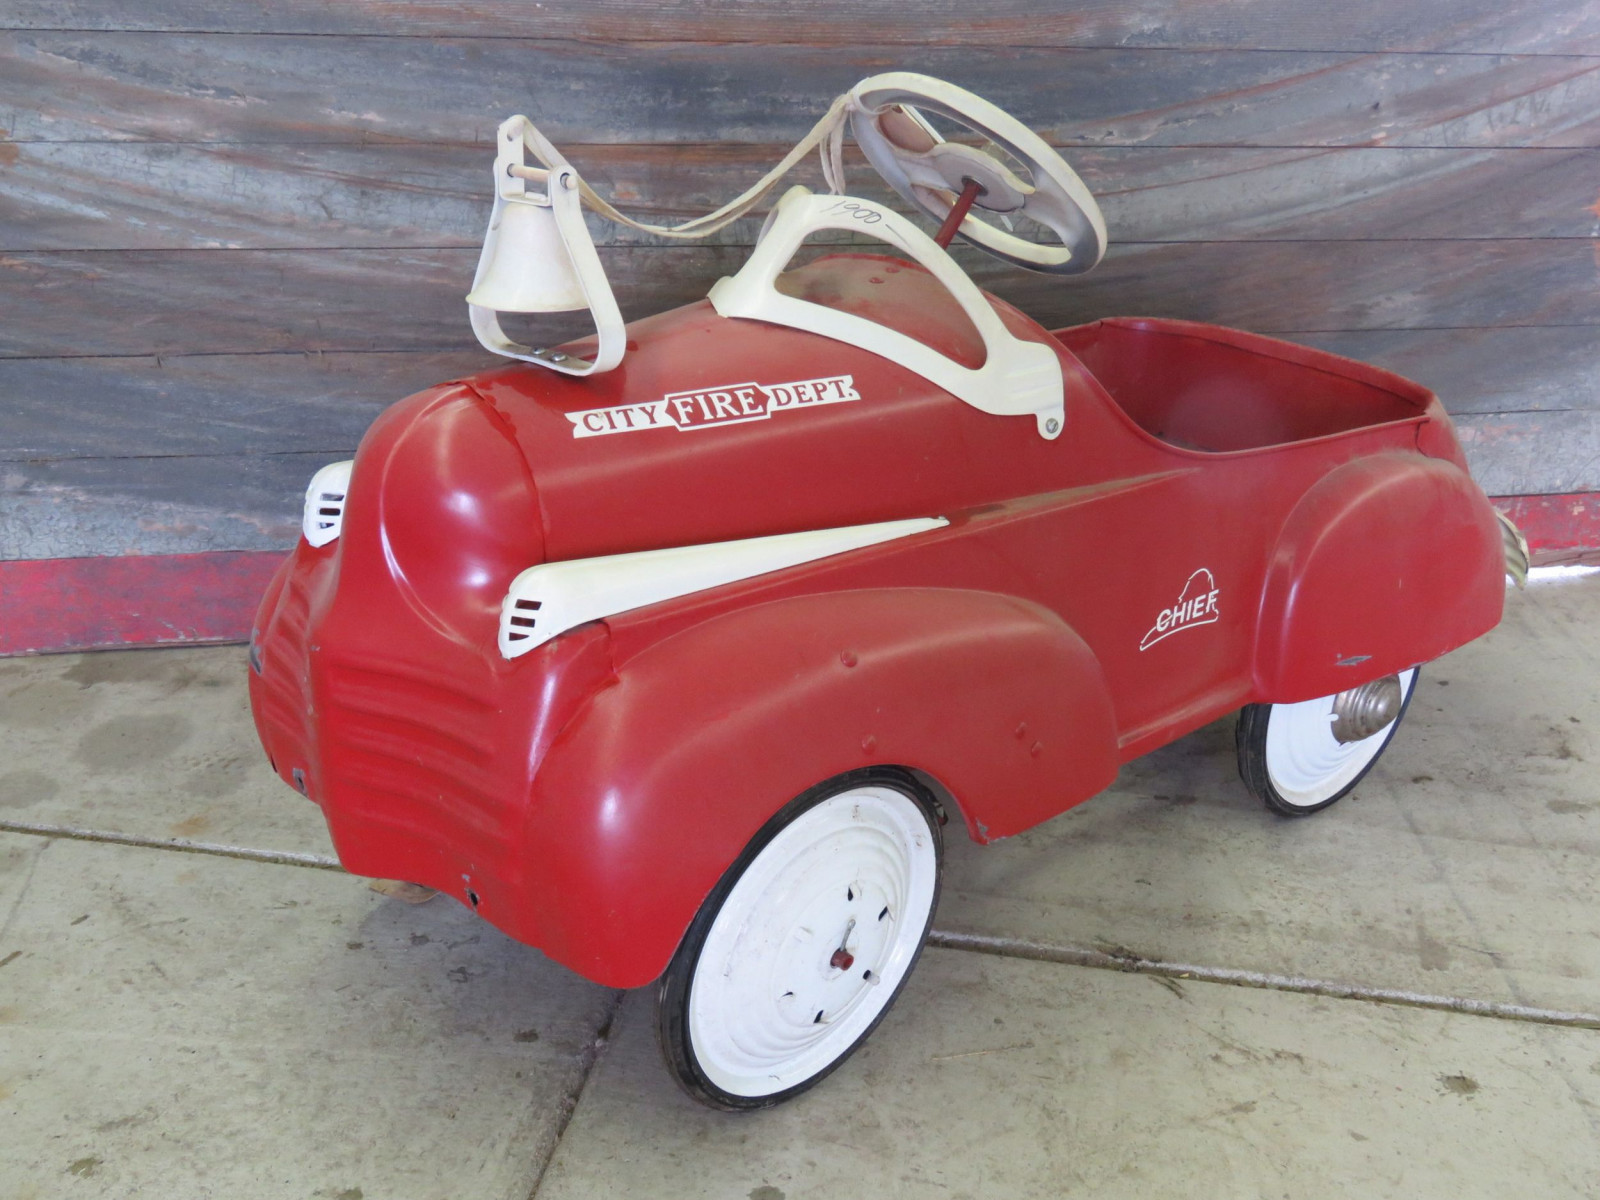 Steel craft City Chief Department Pedal Car - Image 1